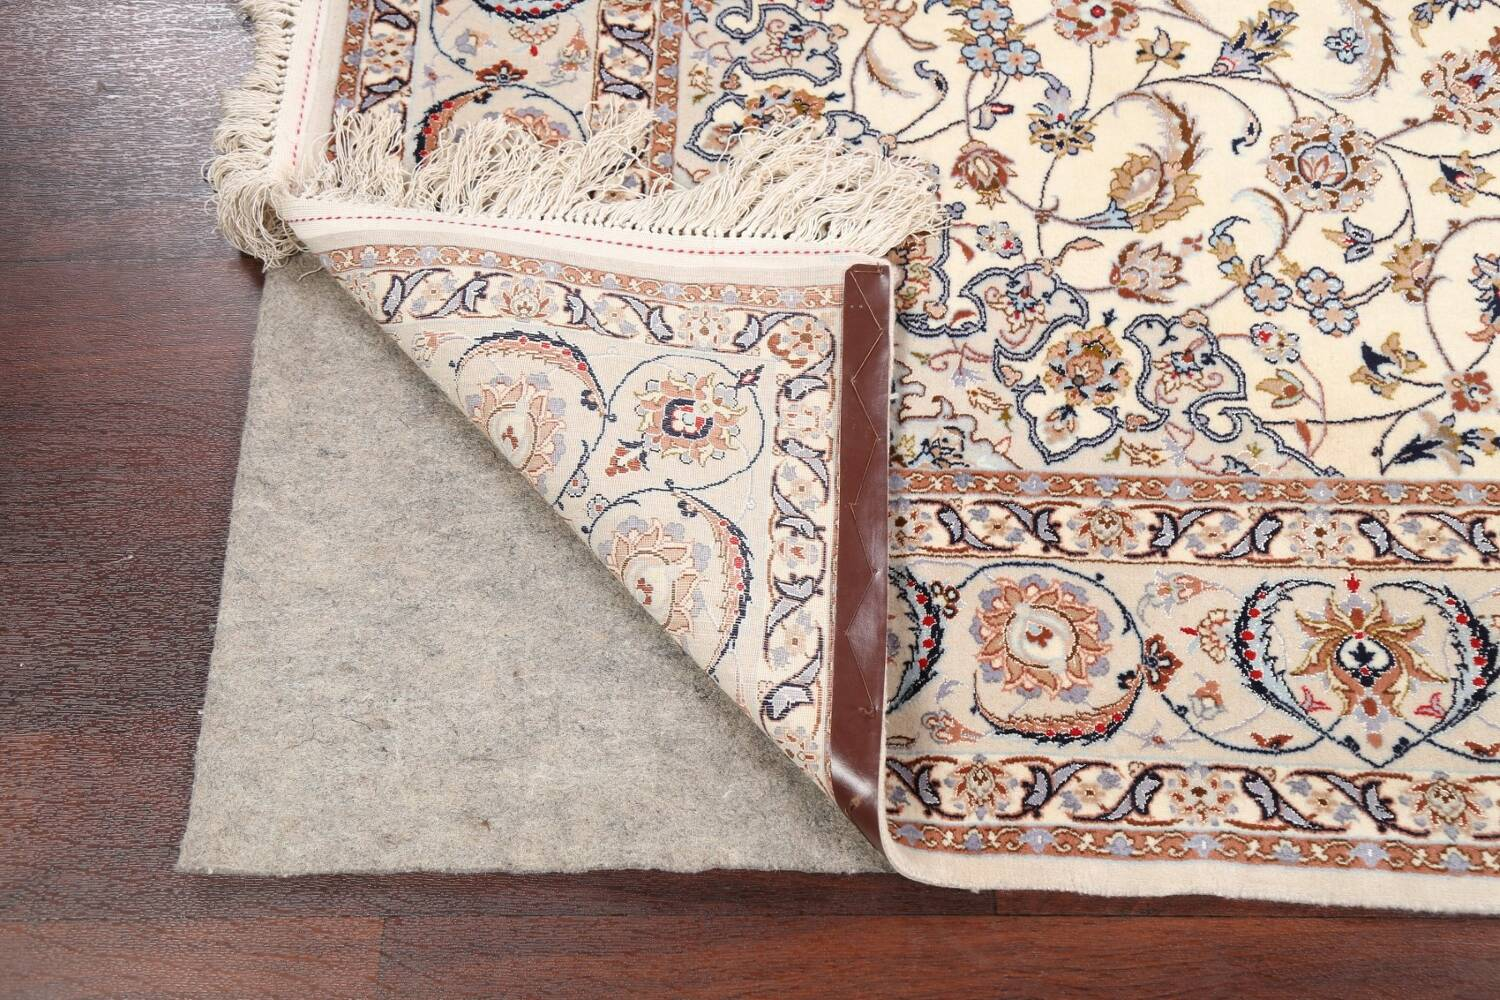 100% Vegetable Dye Floral Isfahan Persian Area Rug 5x8 image 7